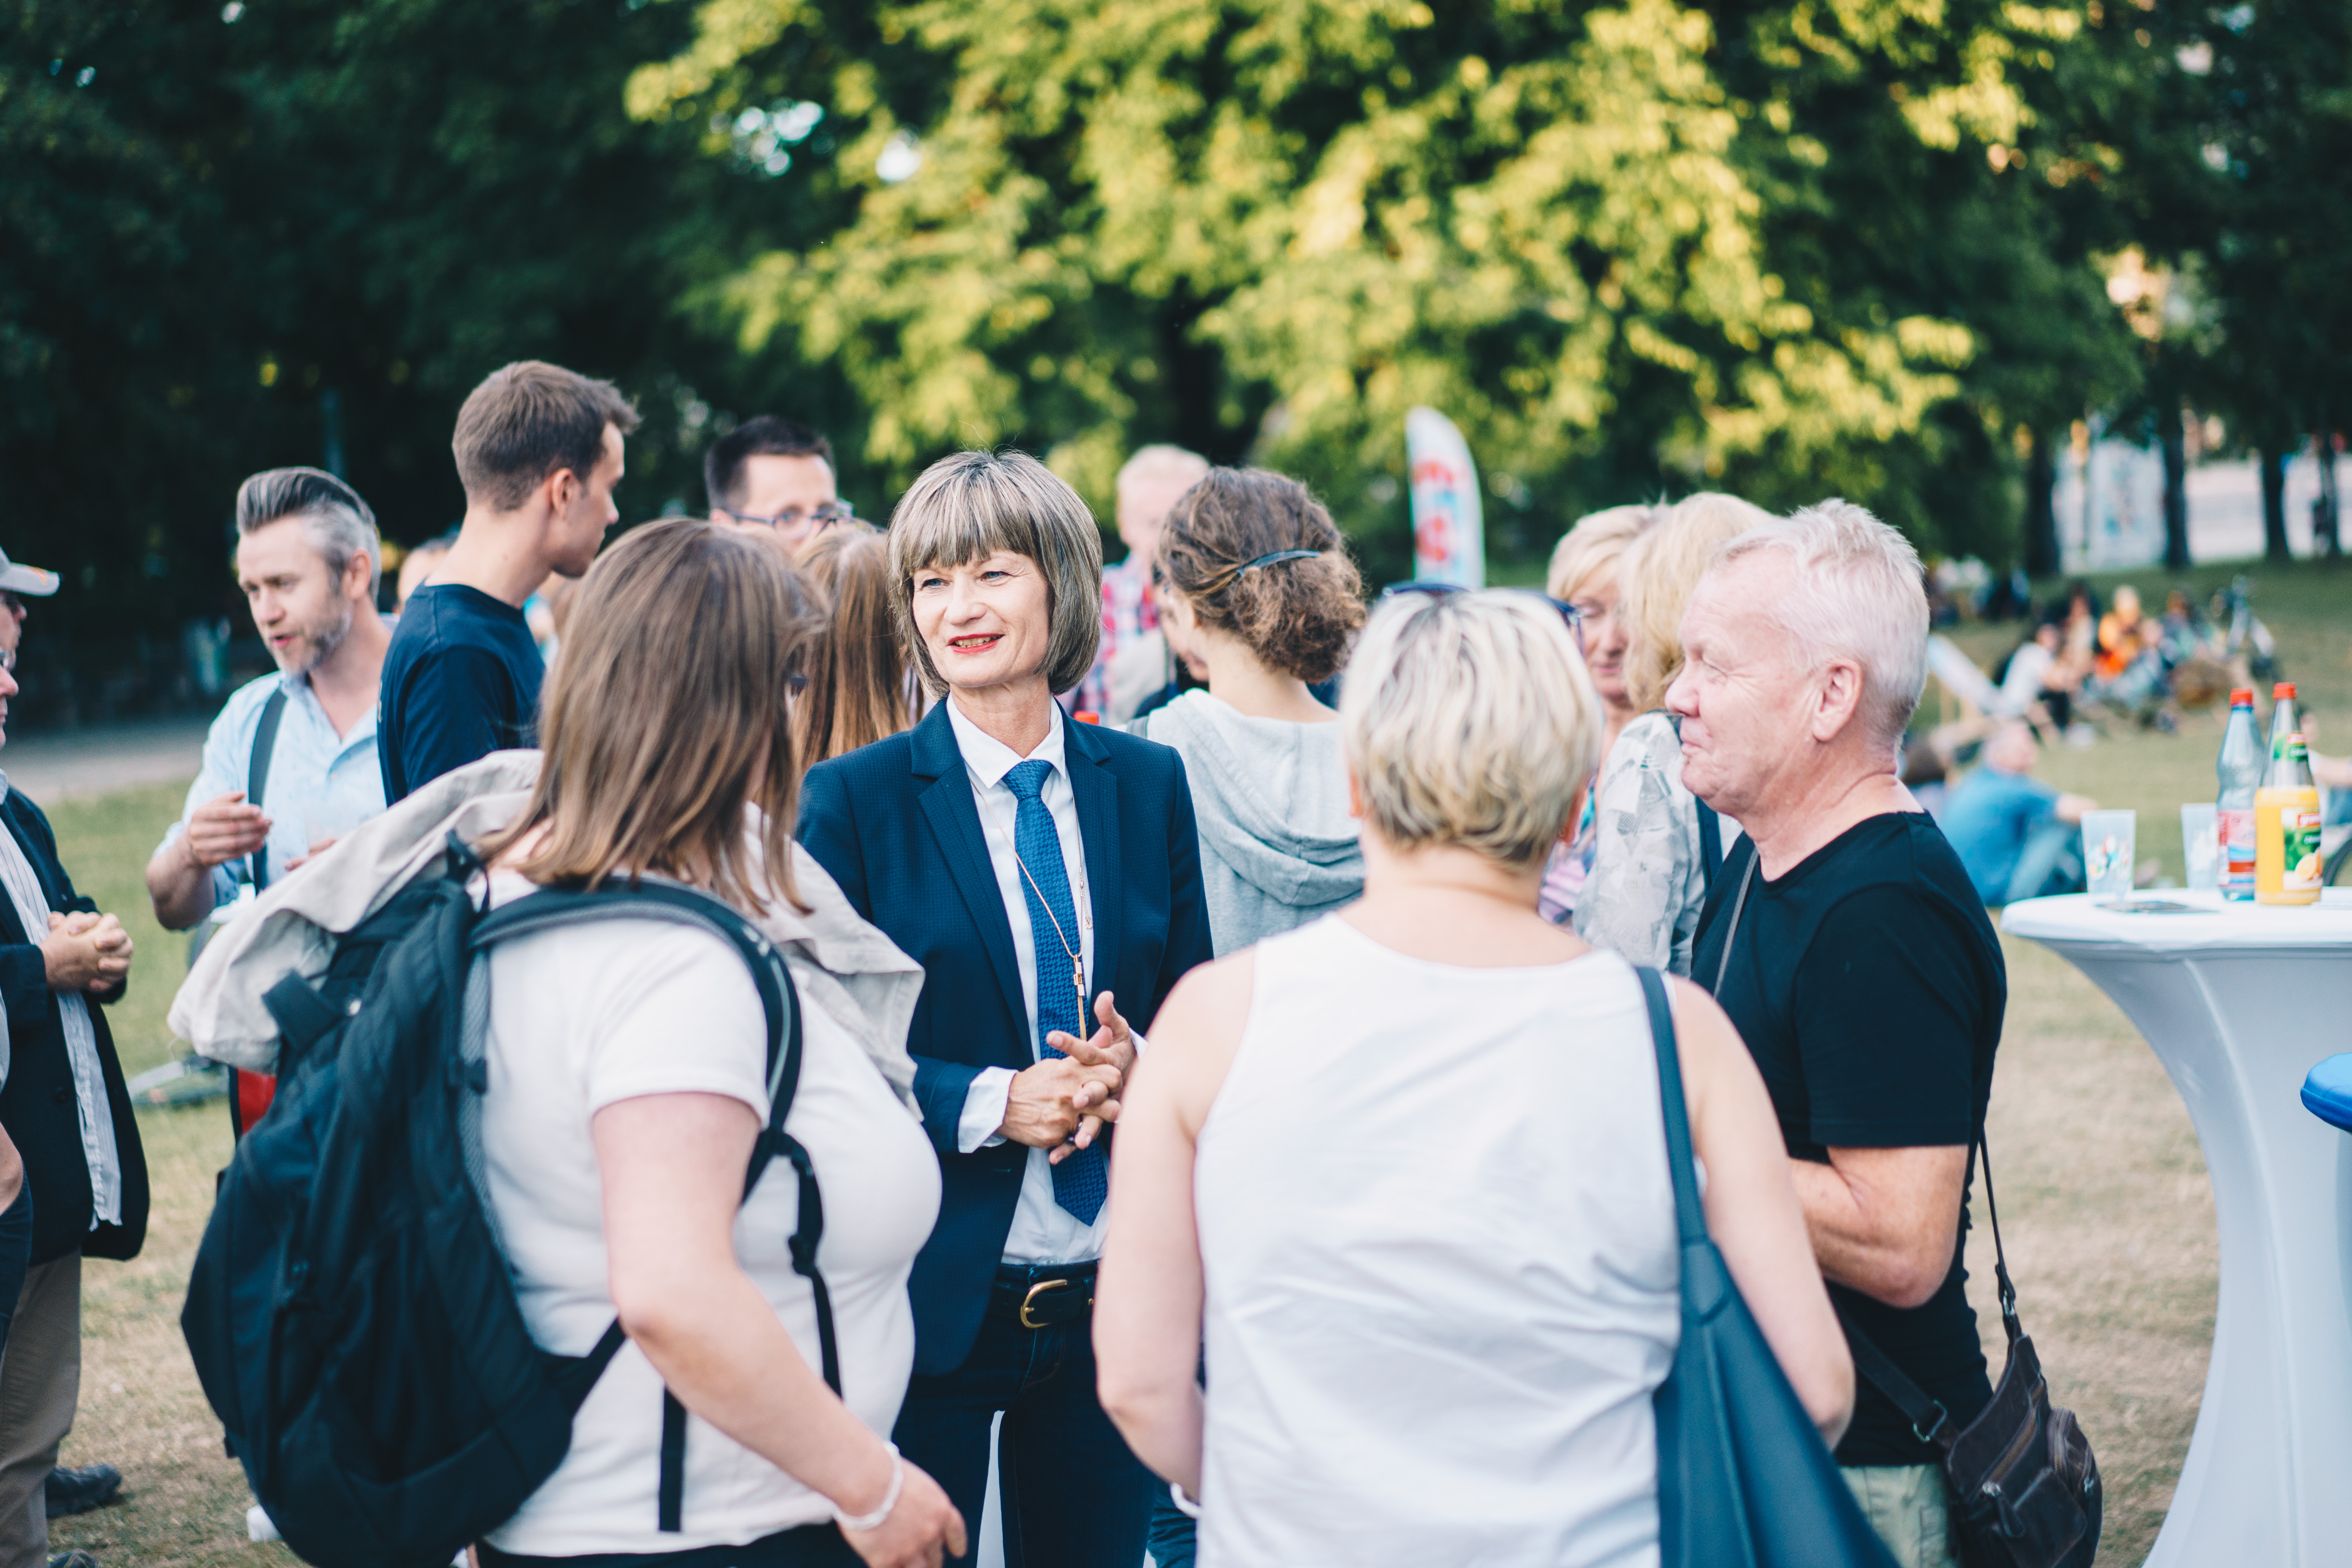 An opportunity to discuss the motto for the Chemnitz application at the Stadthallenpark. Photo: Ernesto Uhlmann